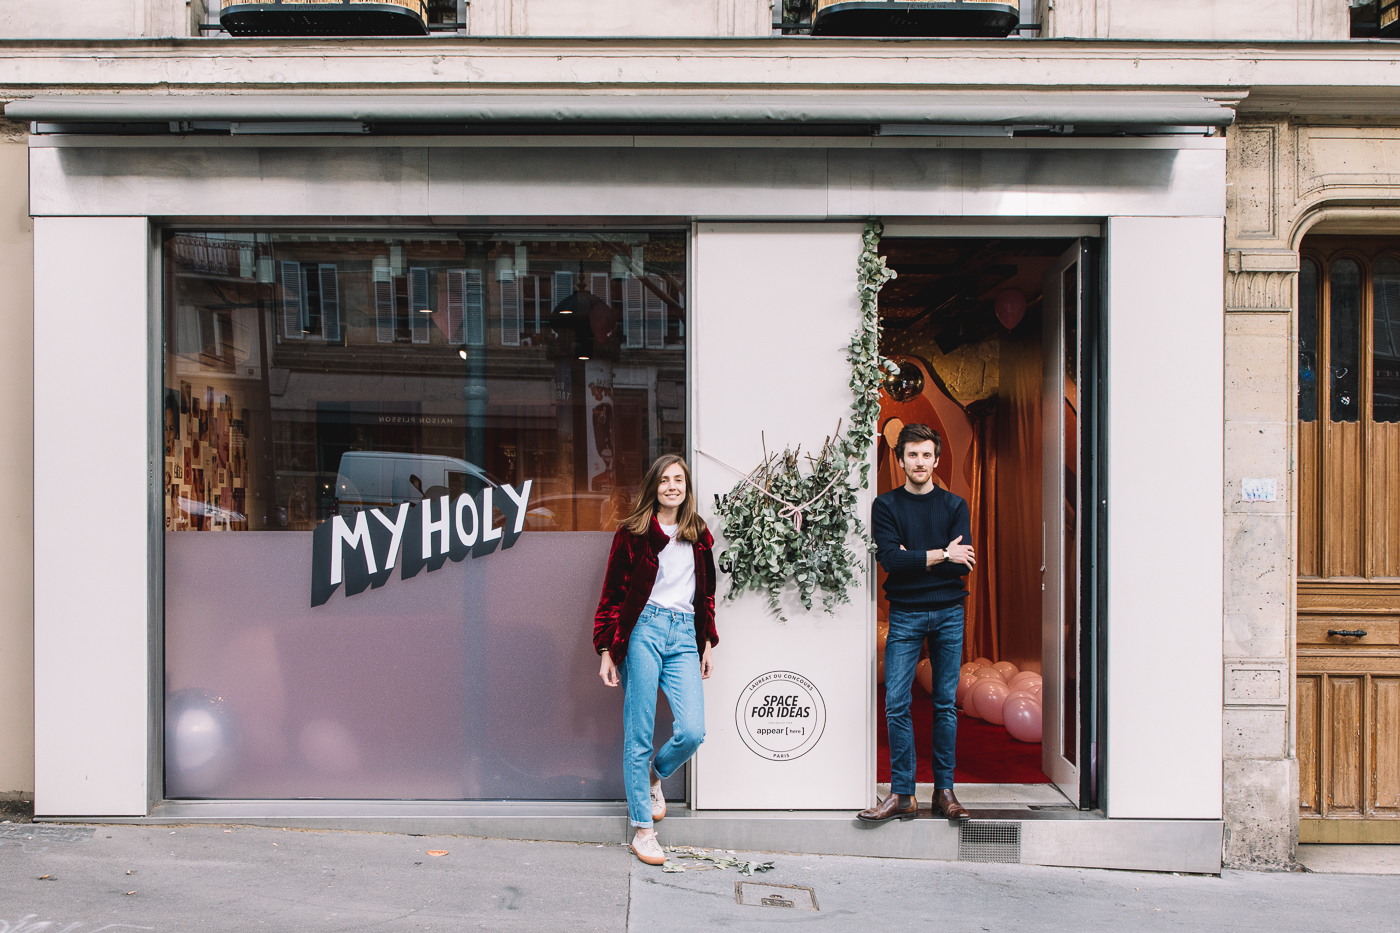 iZettle, pop up, popup, pop-up, pop up shop, grain and knot, grain & knot, POS, Point of Sale, how to pop up, notting hill pop up